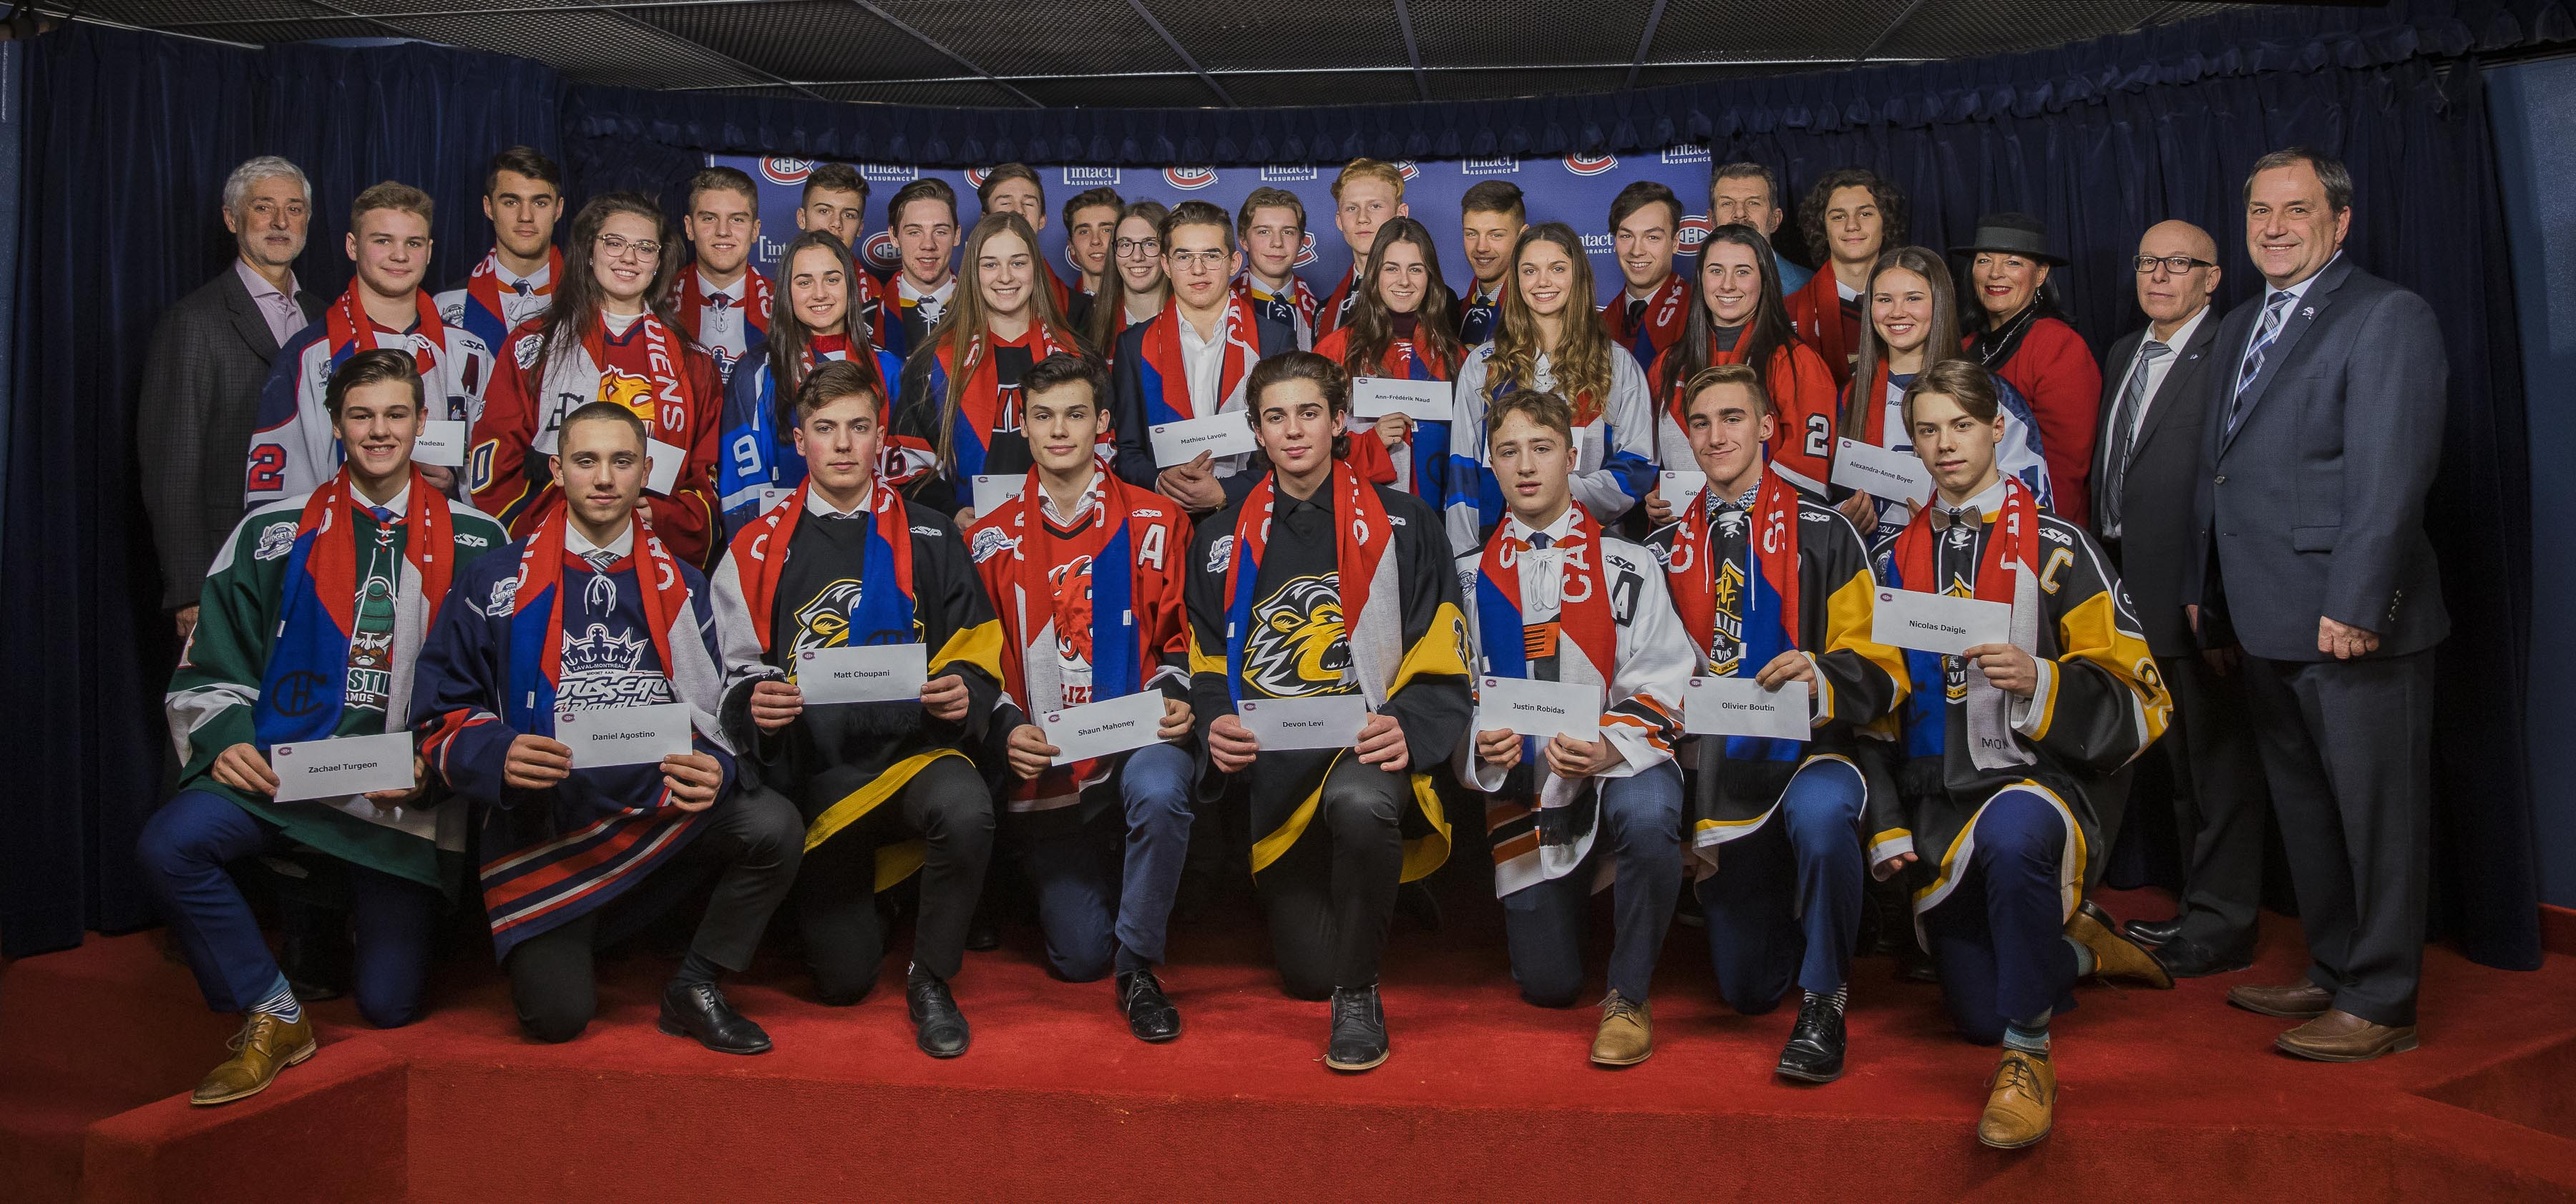 BP---E-Lavoie---Groupe-canadiens2019.jpg